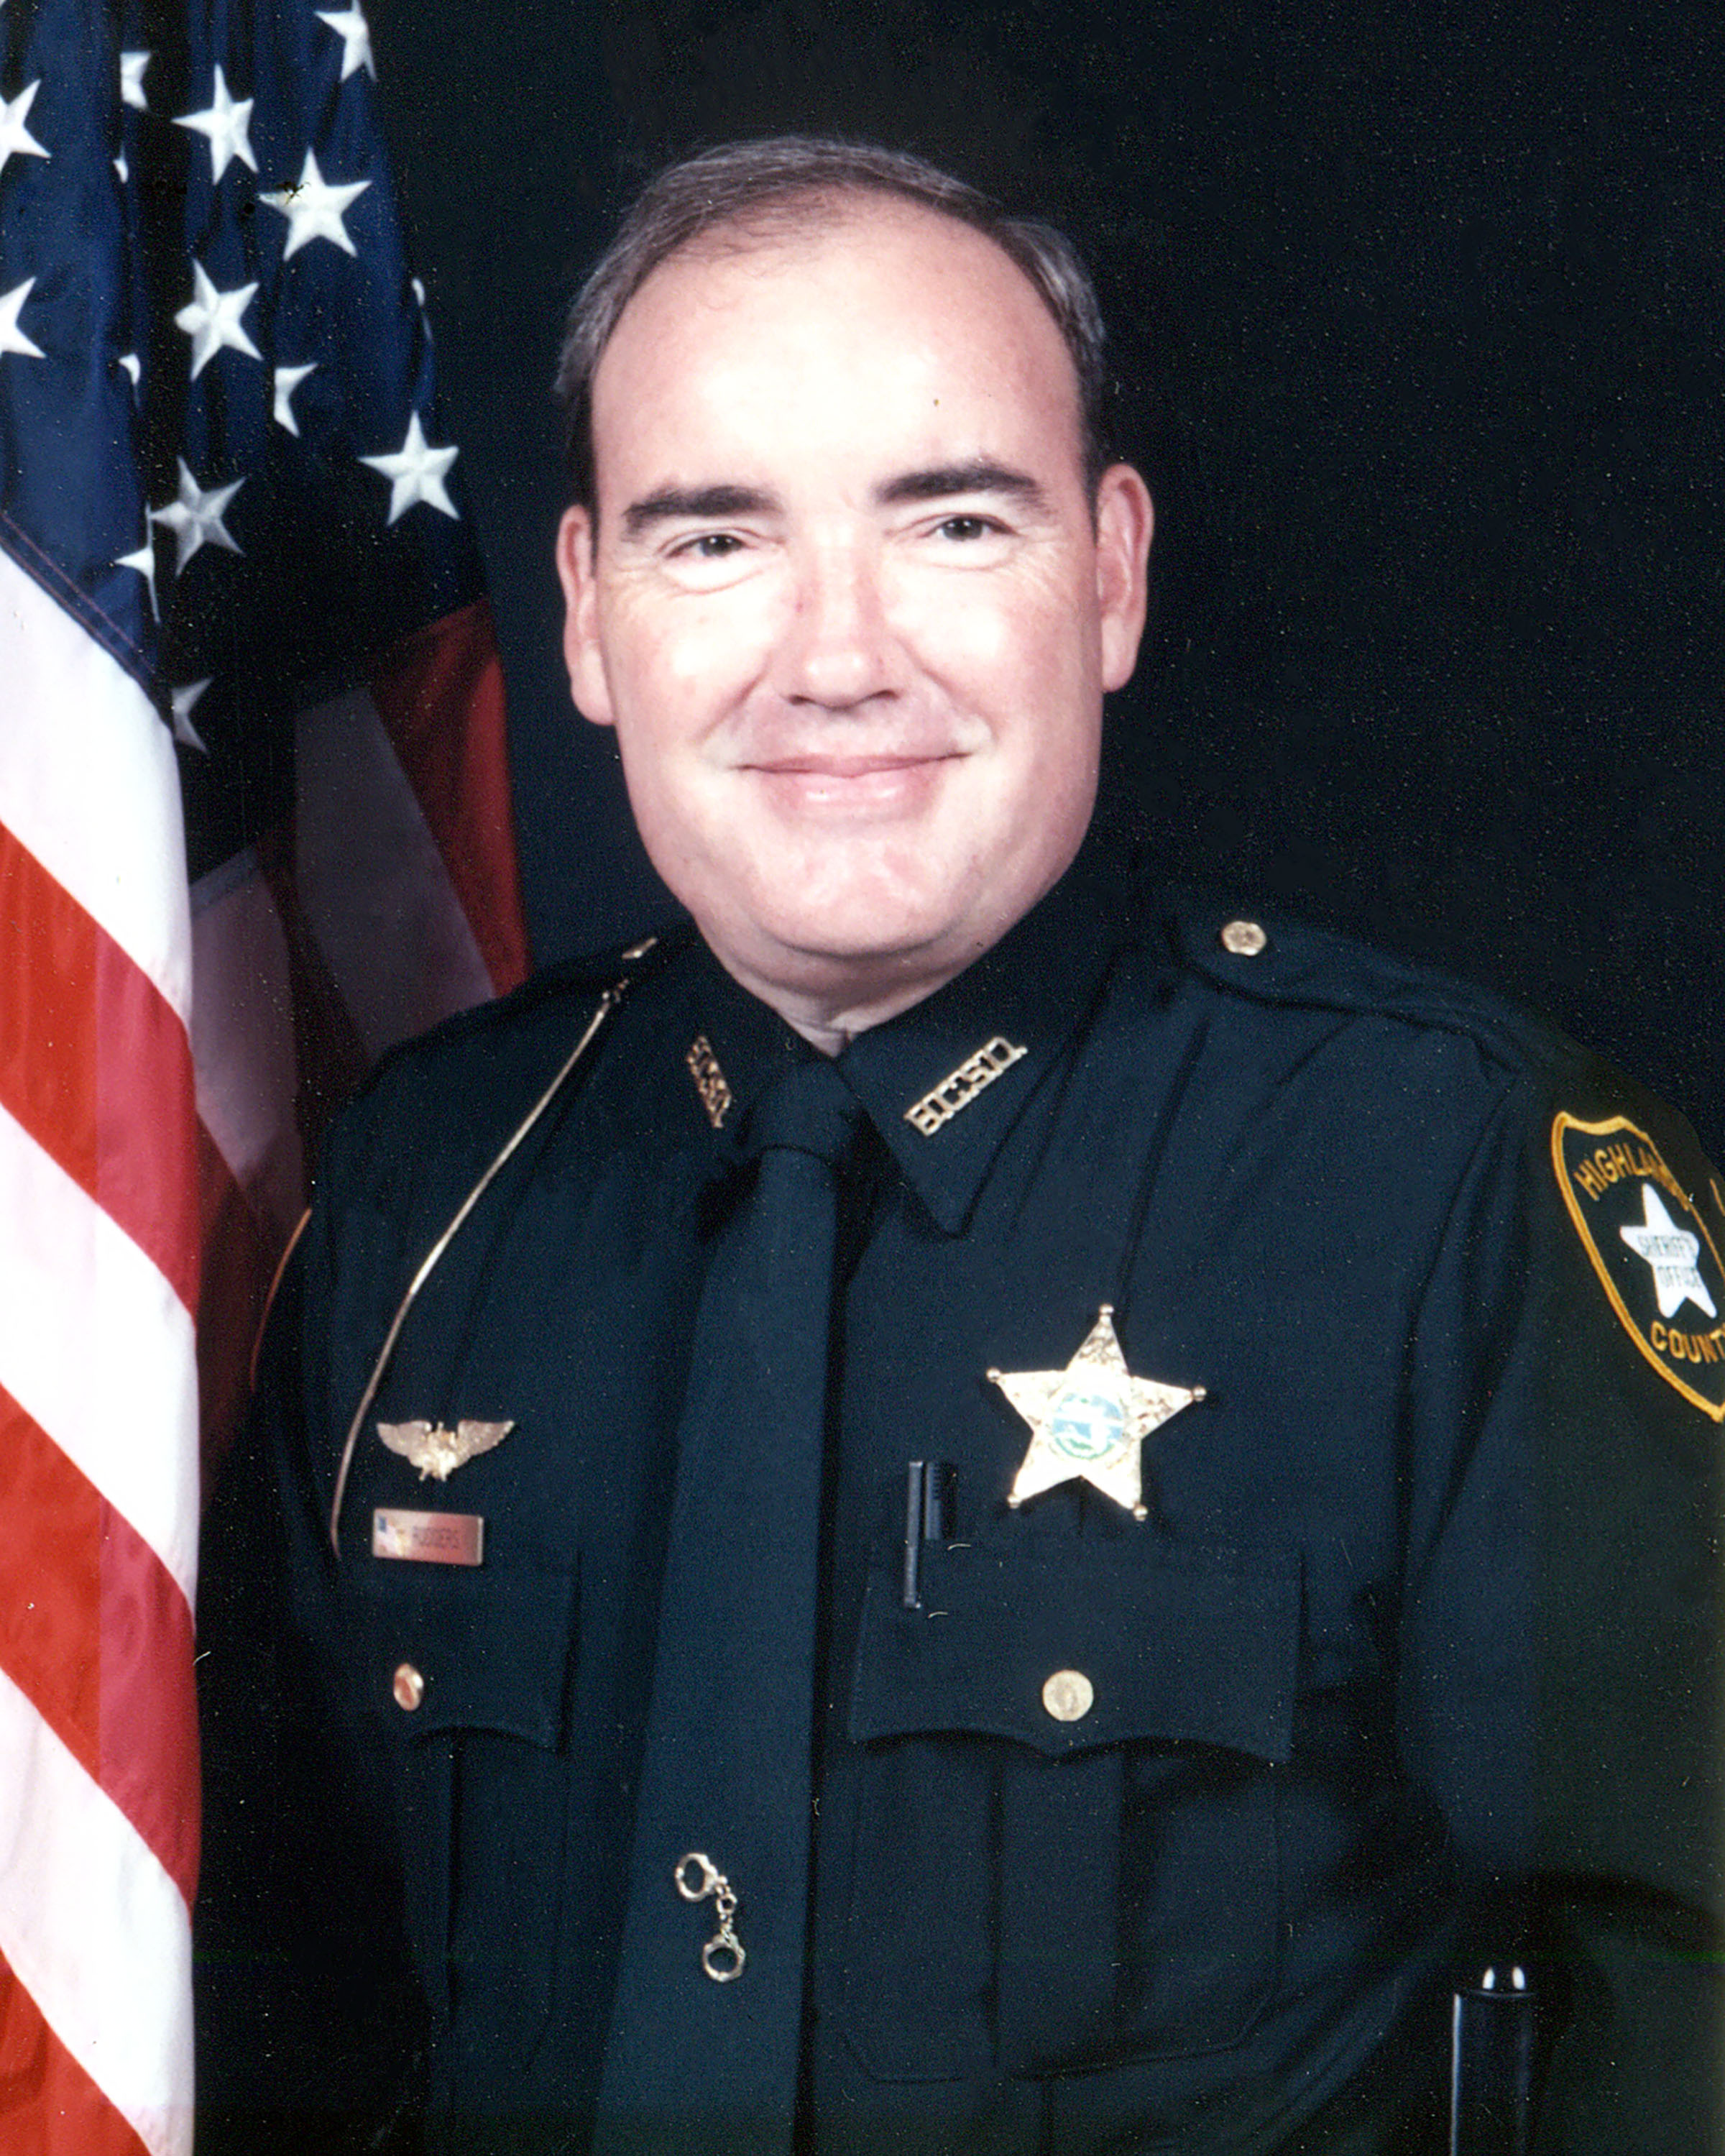 Highlands Ranch Police Blotter: Inspector James E. Rodgers, Highlands County Sheriff's